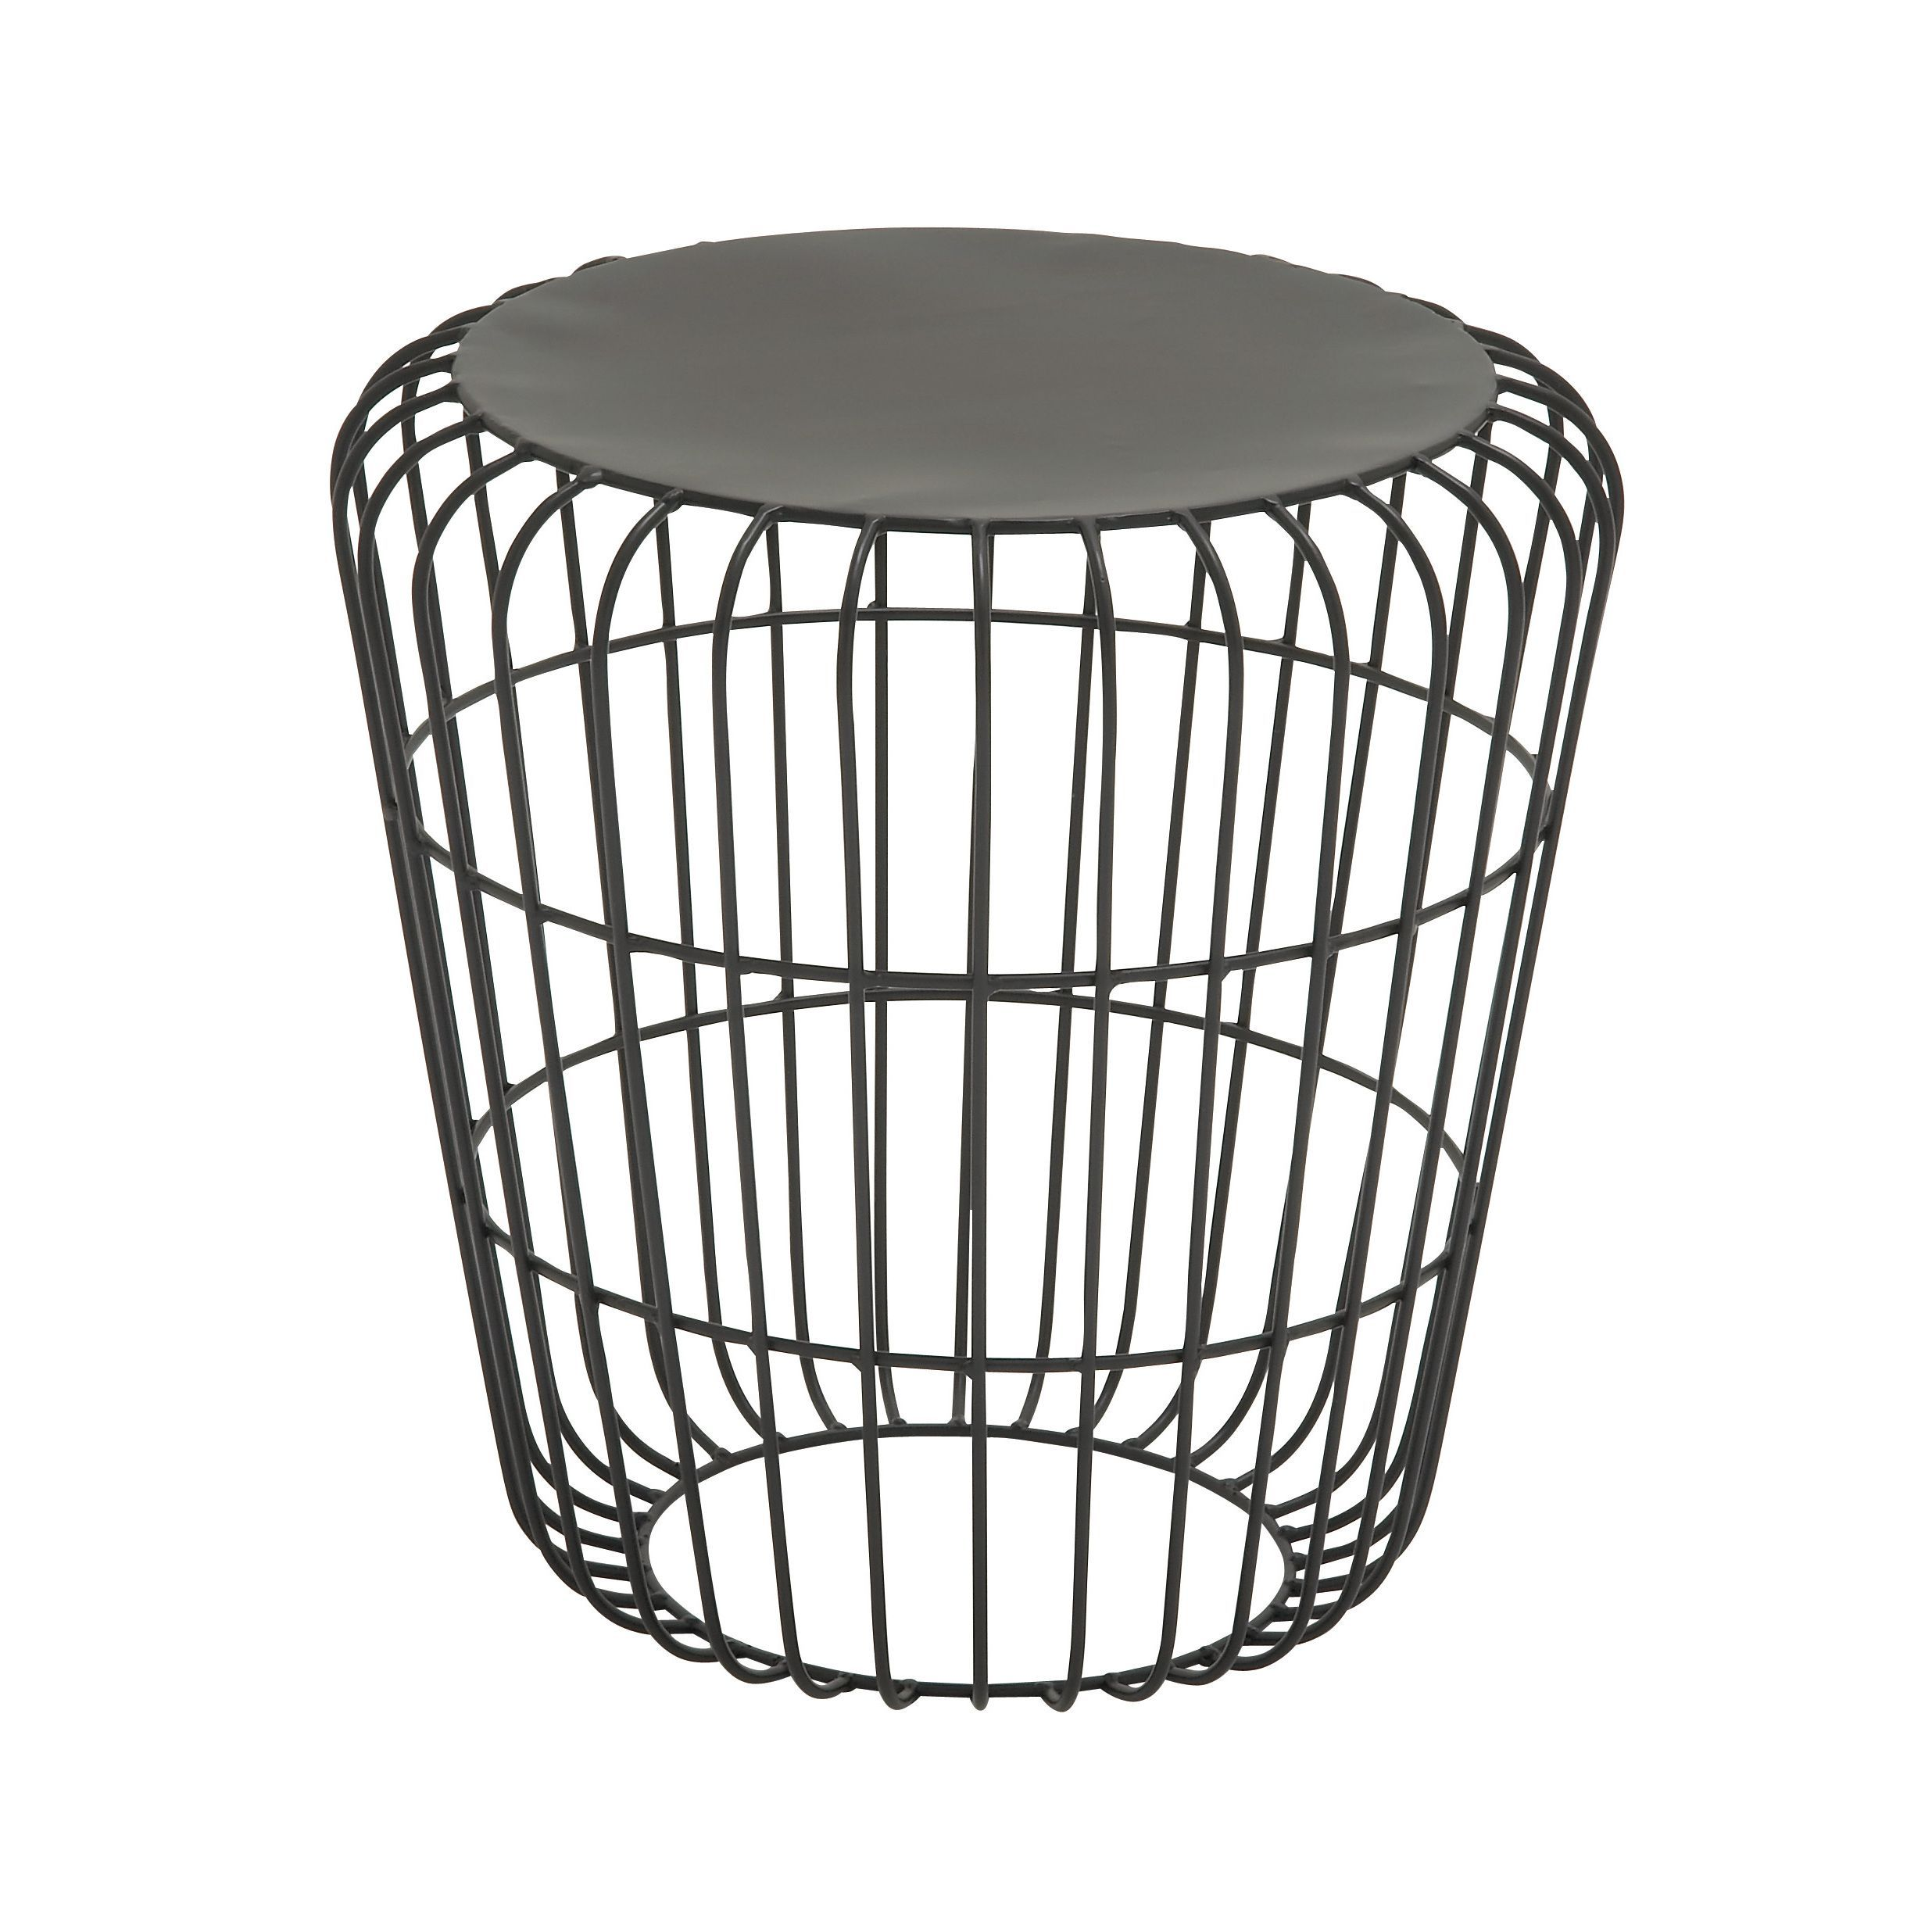 This elegant round wire side table black adds instant style to your ...